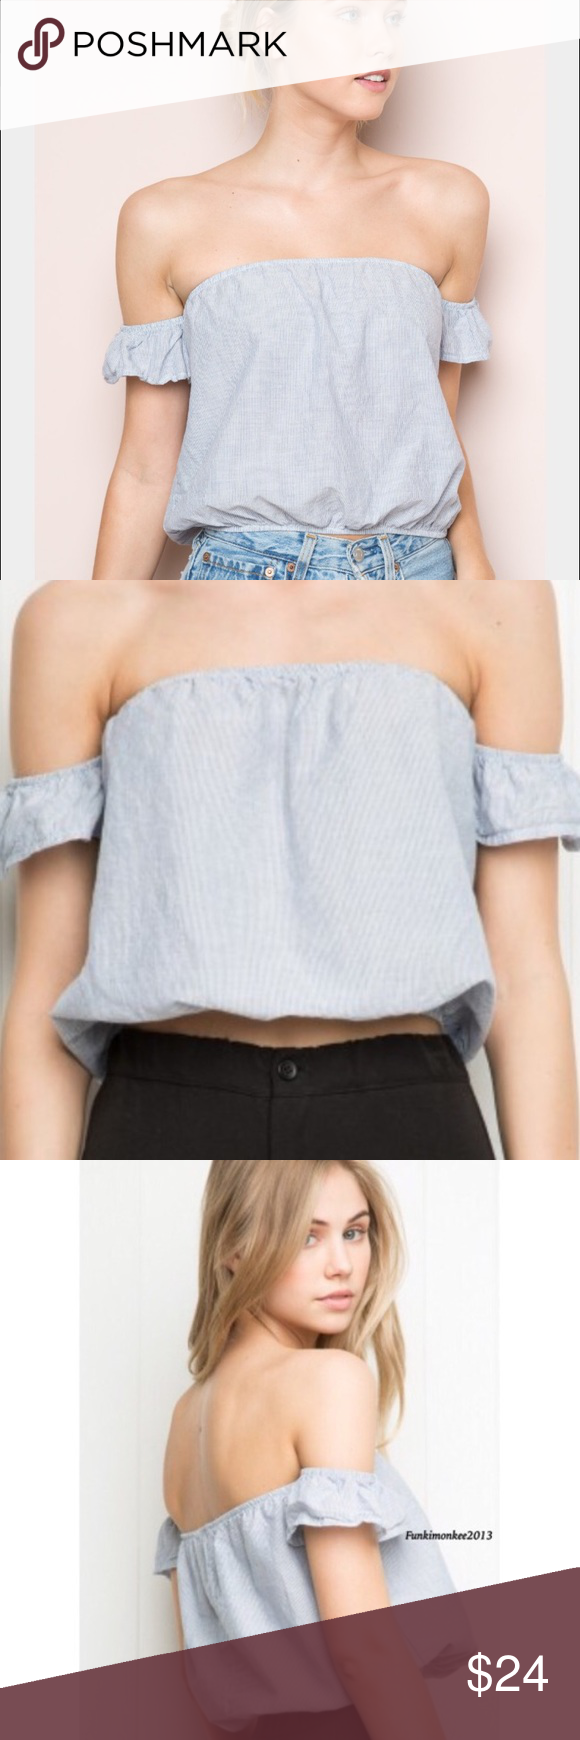 2706313ab78a55 Brandy Melville beccah stripe off the shoulder top Brandy Melville striped  off the shoulder beccah top. It s scrunched in the top and bottom and has  sleeves ...